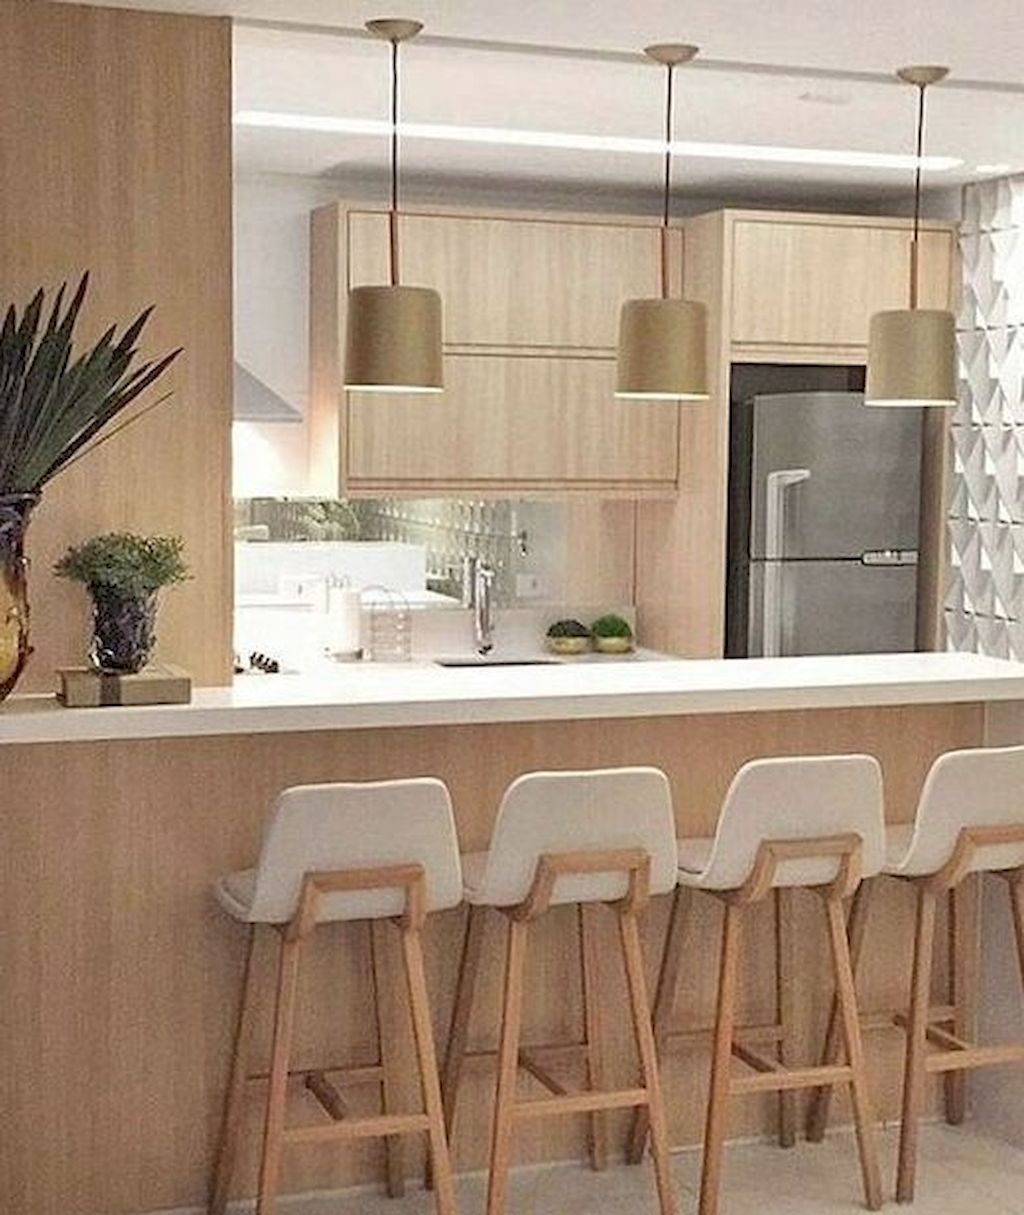 90 Inspiring Small Kitchen Remodel Ideas  Kitchens And Kitchen Small Amazing Small Kitchen Remodels Inspiration Design